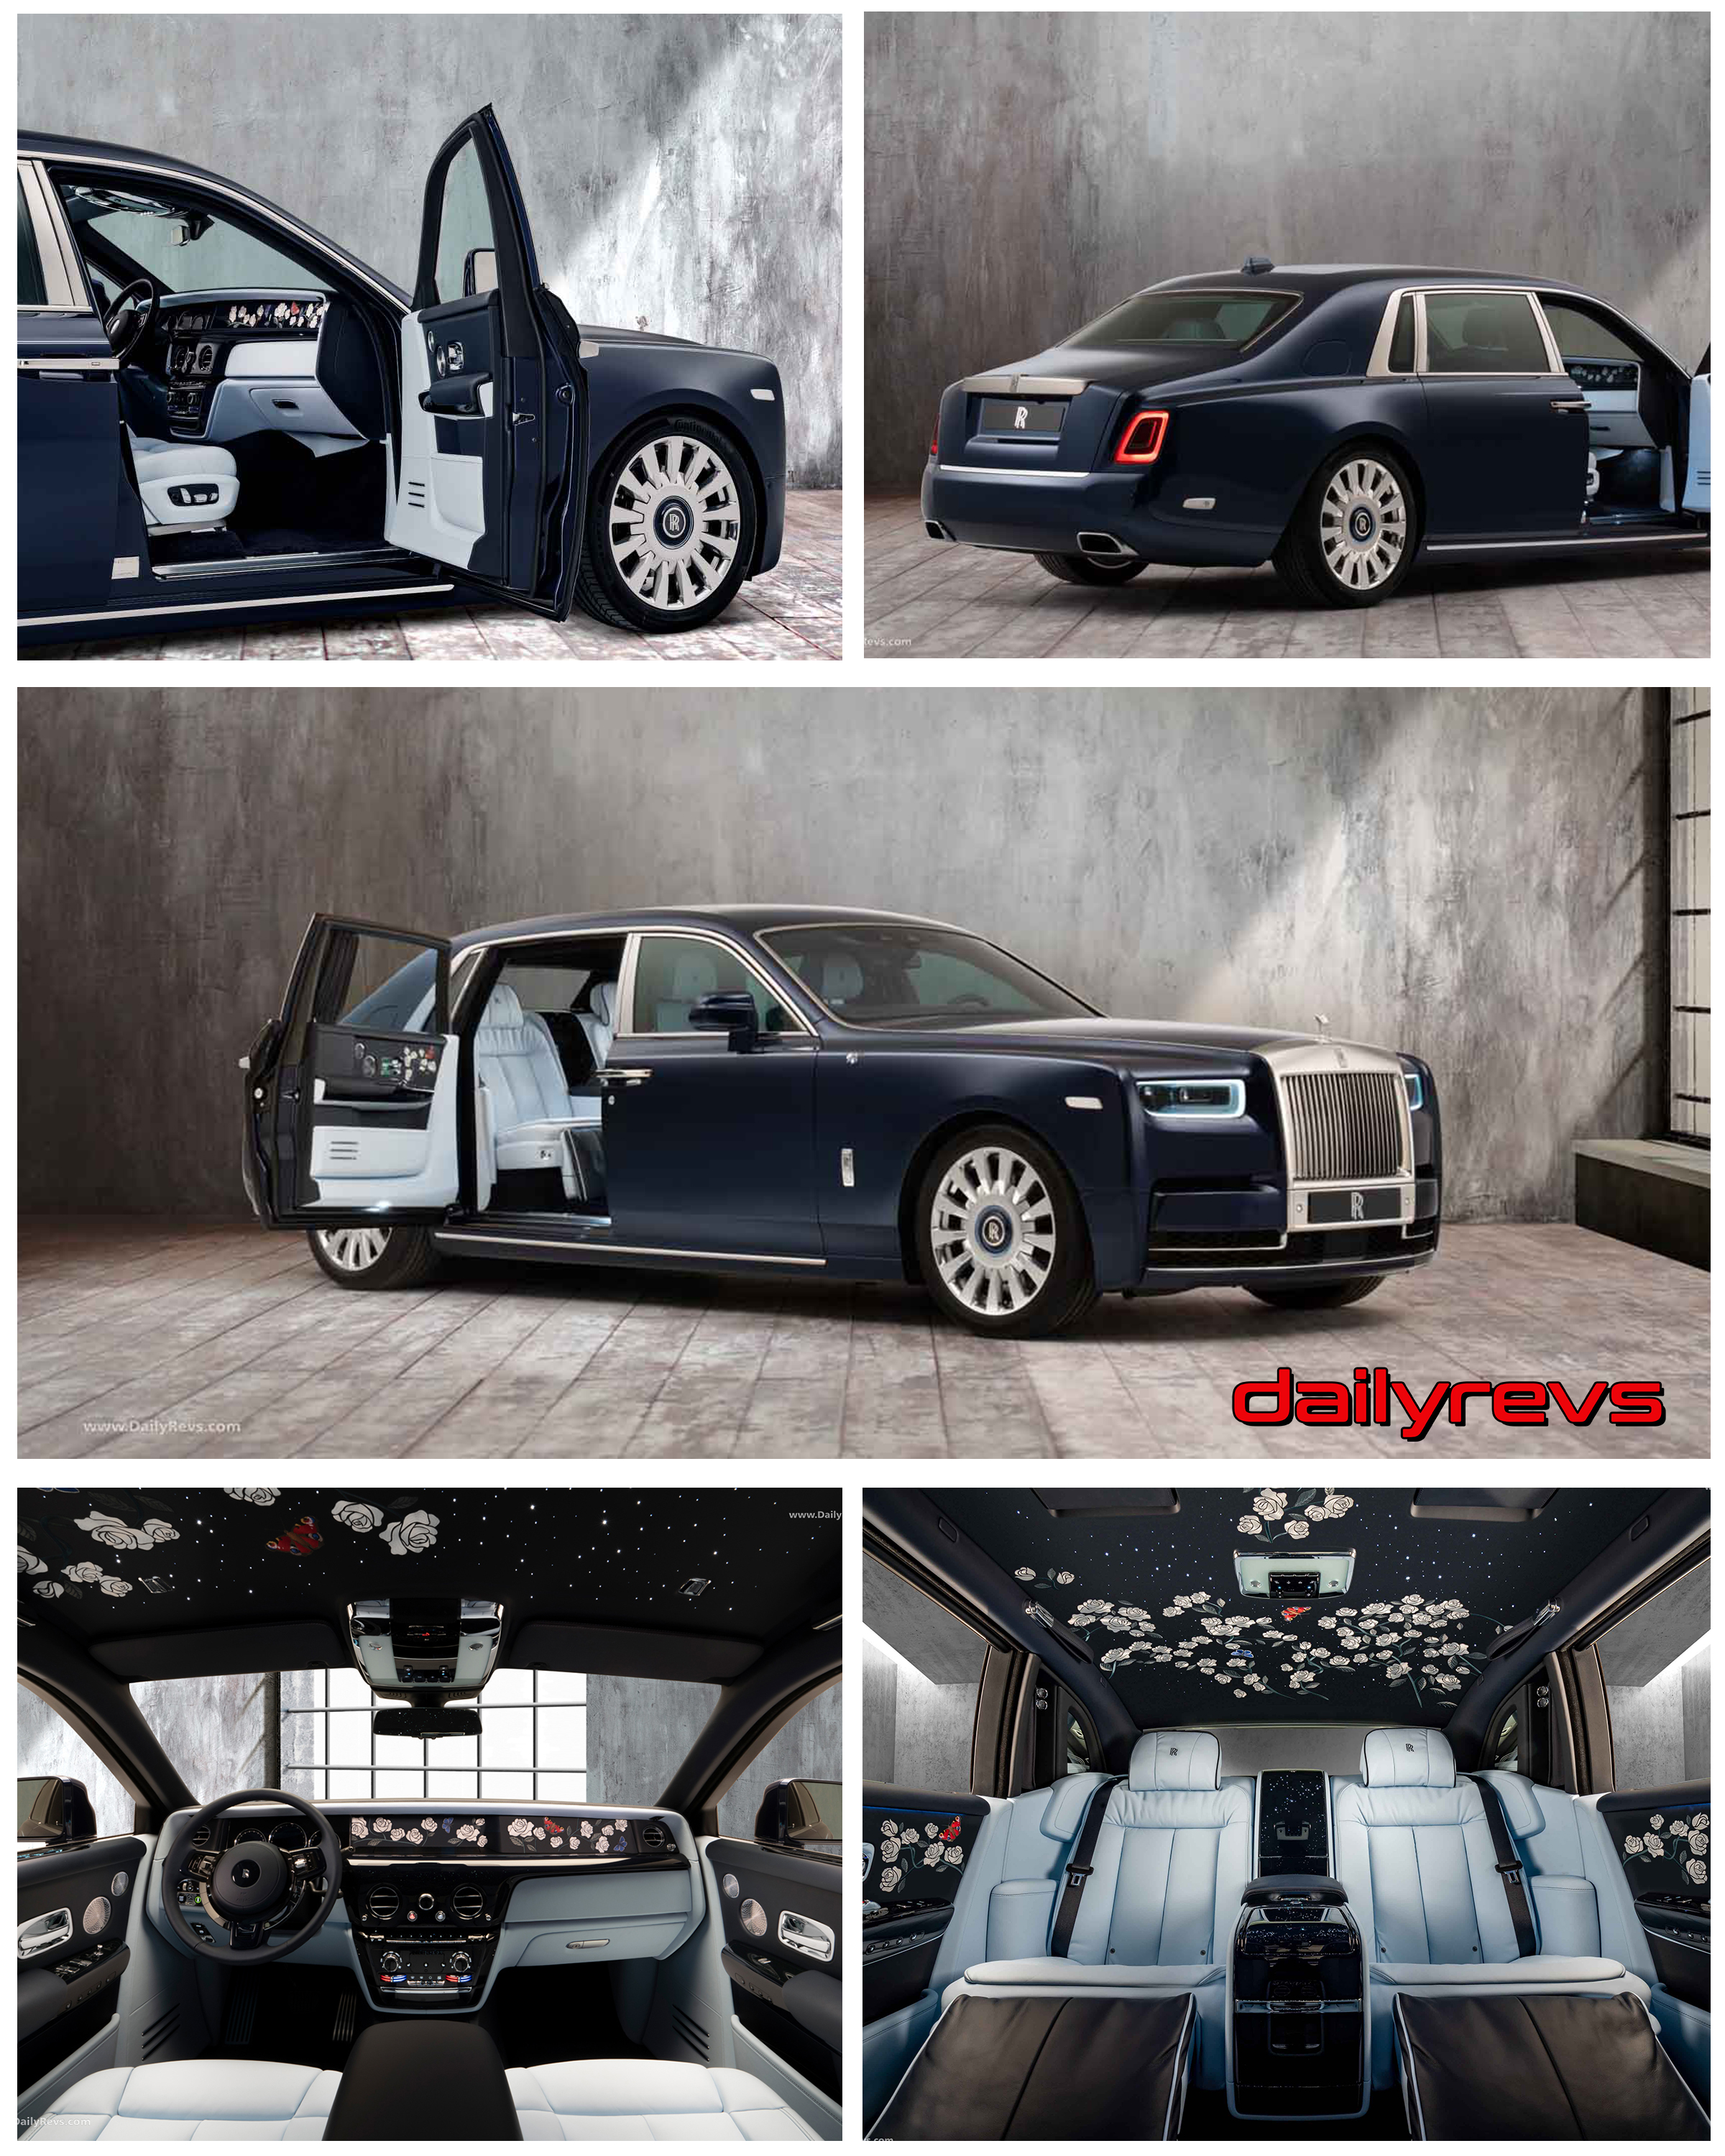 2020 rolls royce phantom